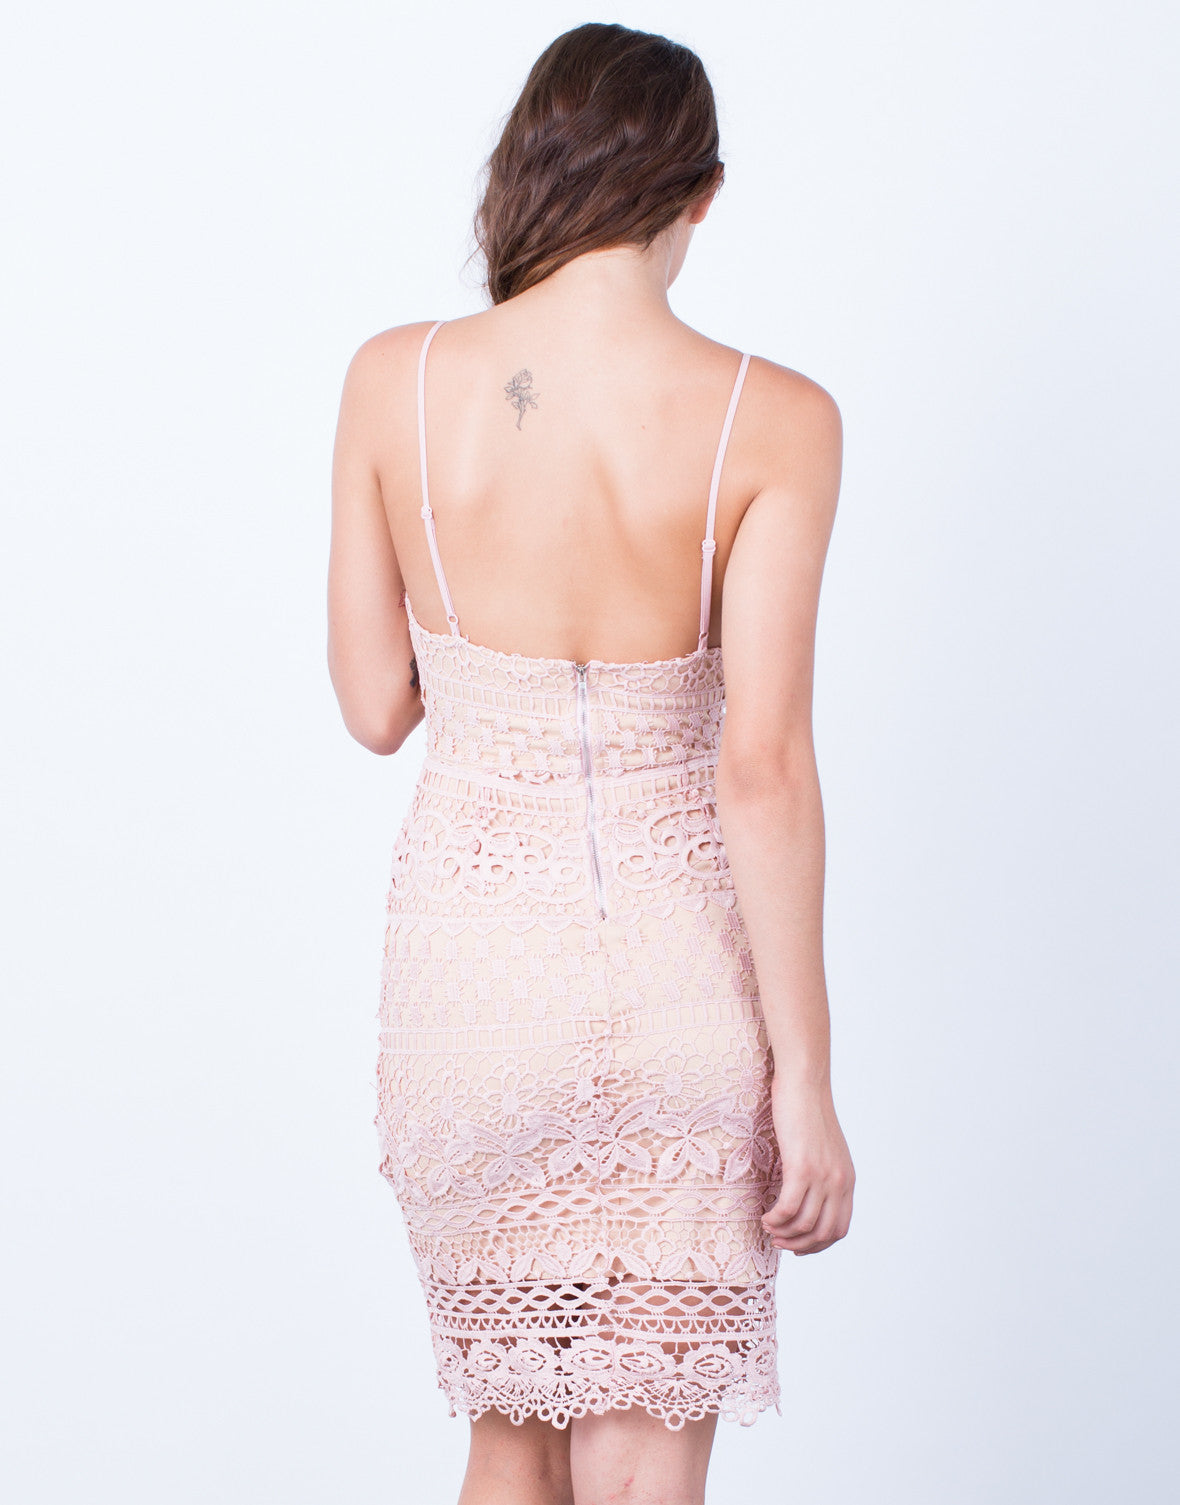 Back View of Take the Night Away Dress